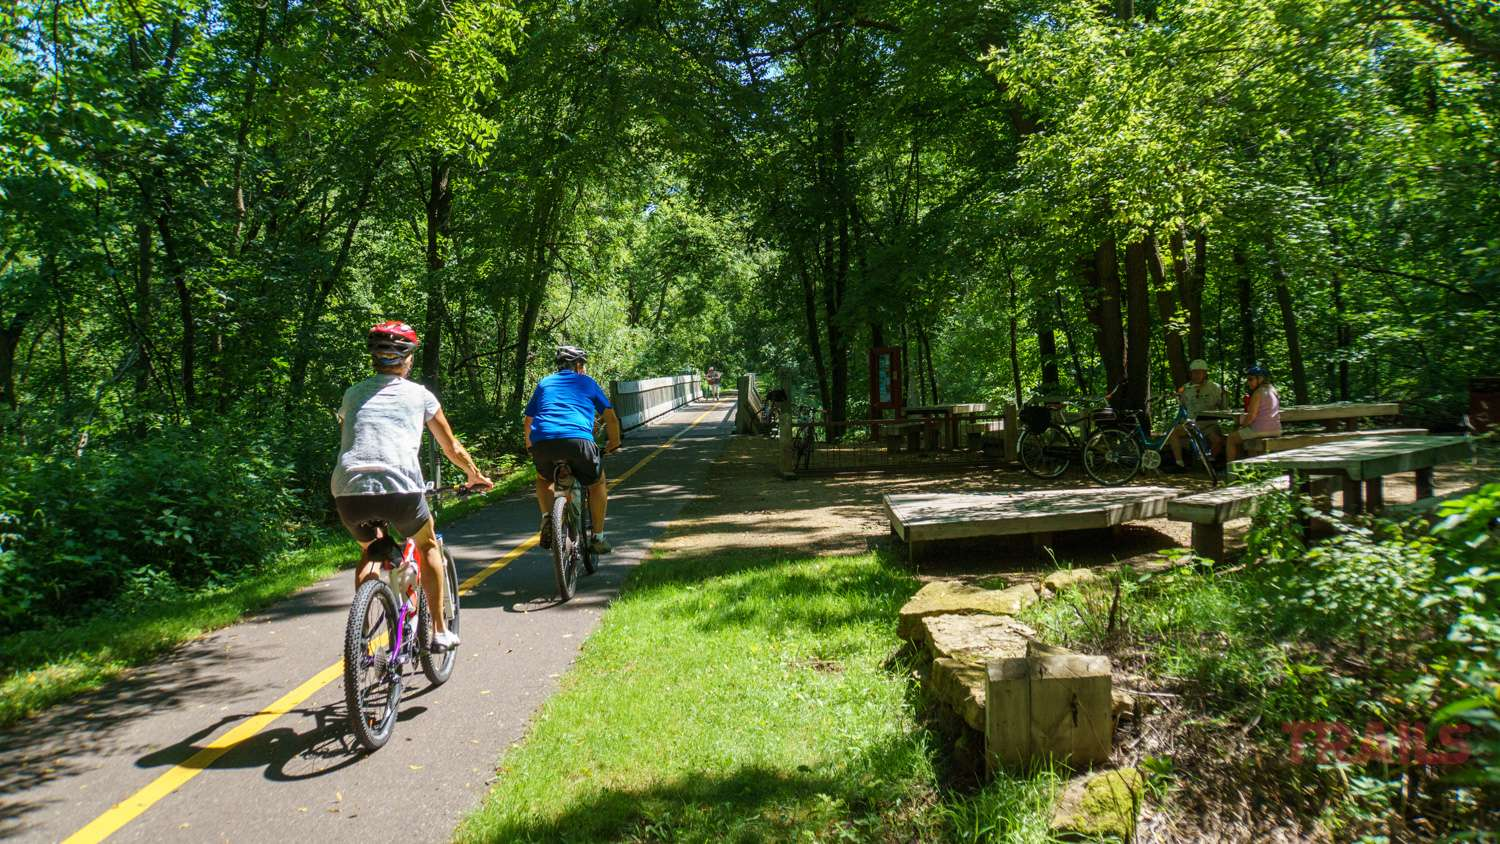 a man and a woman bike past a rest area on a trail